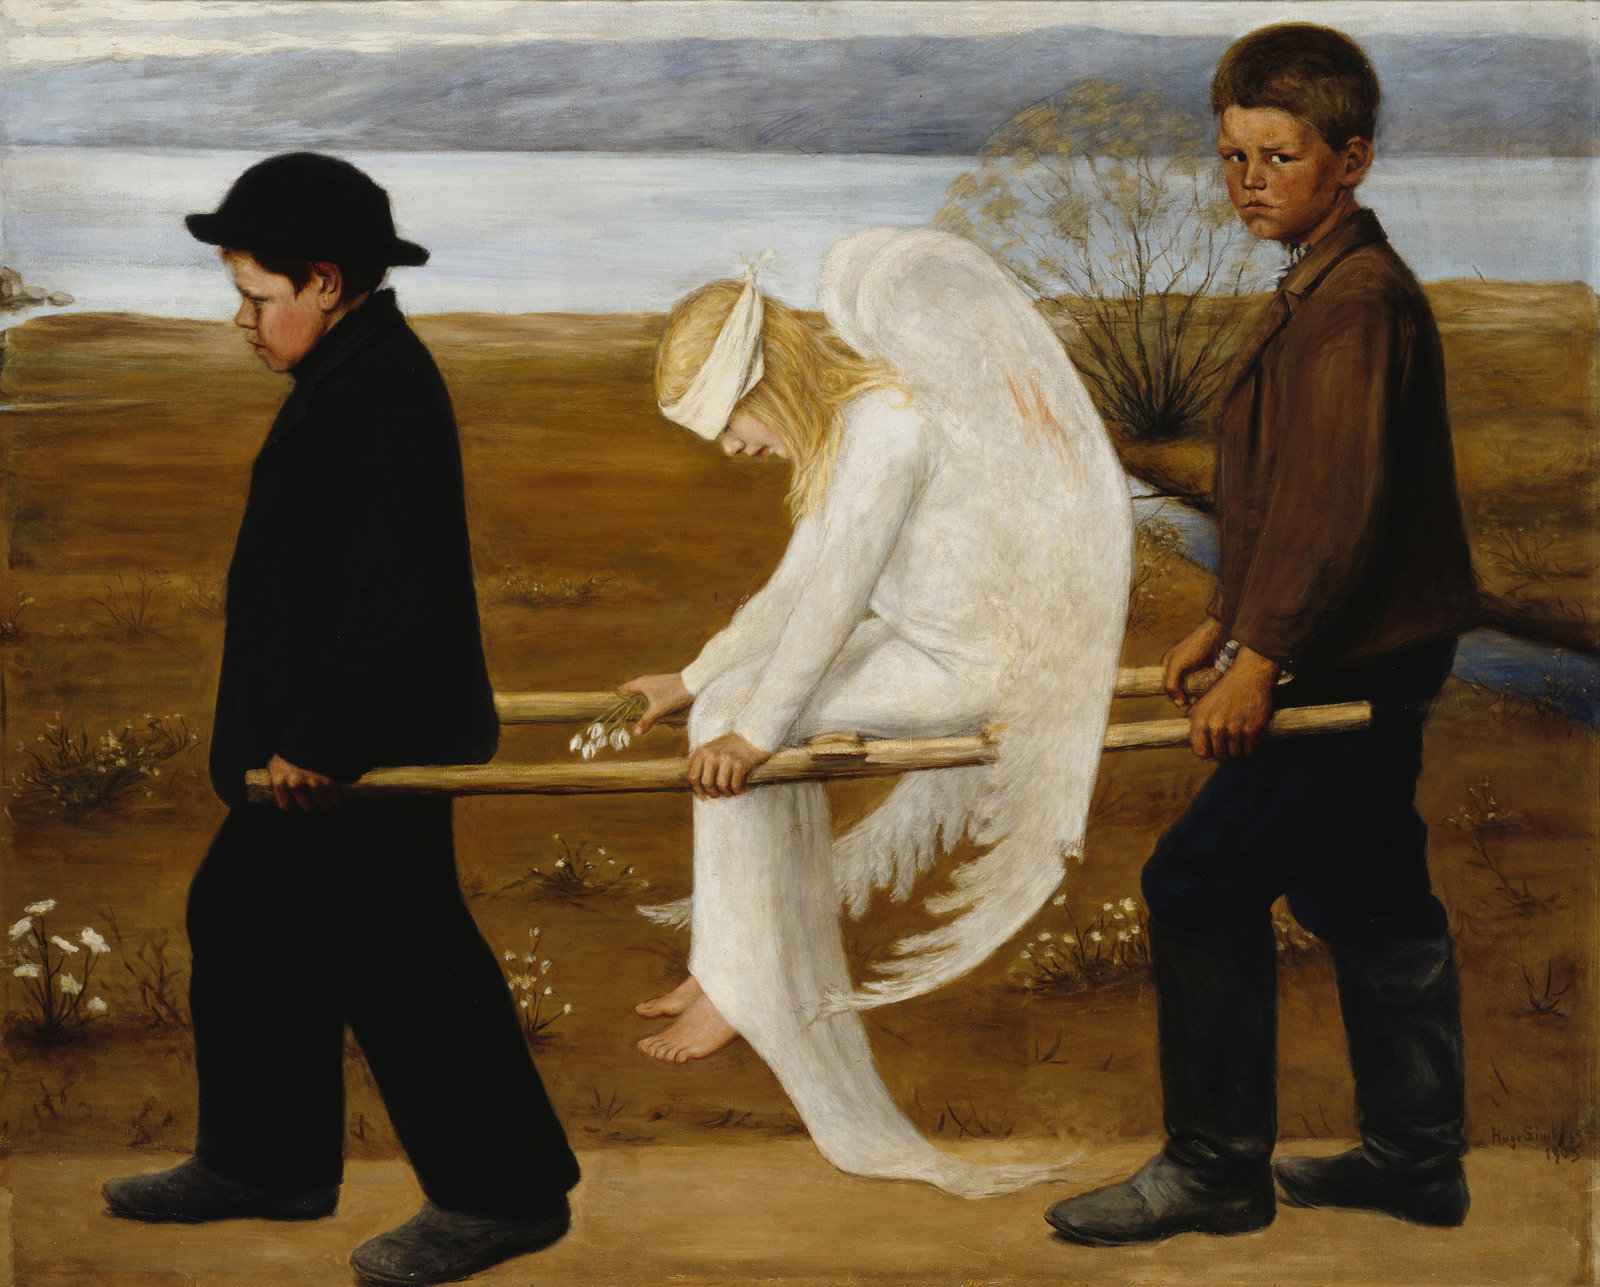 The Wounded Angel, 1903, Hugo Simberg, Finnish National Gallery, CC BY